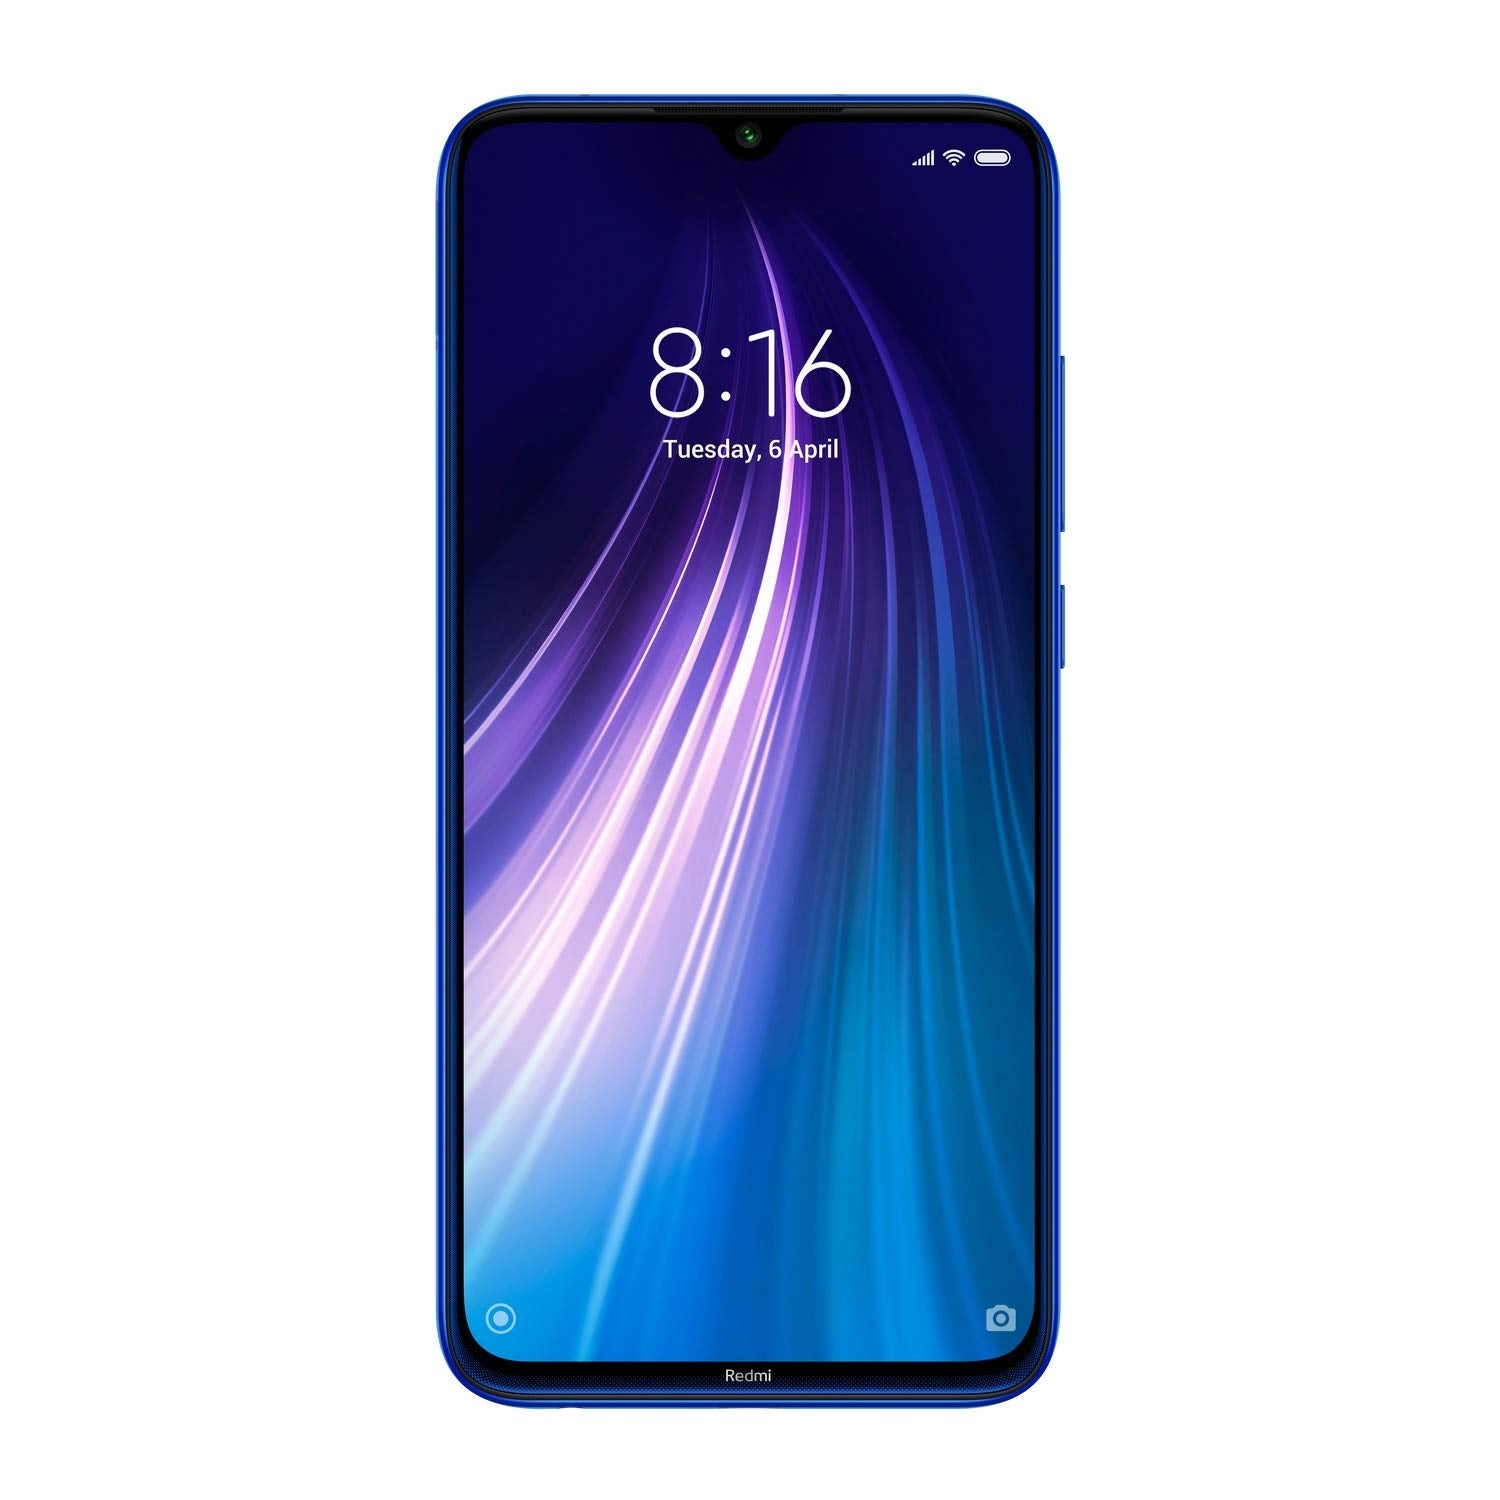 https://cdn.shopify.com/s/files/1/0079/1317/7151/files/Xiaomi_Mi_Redmi_8_64gb.mp4?v=1591312562